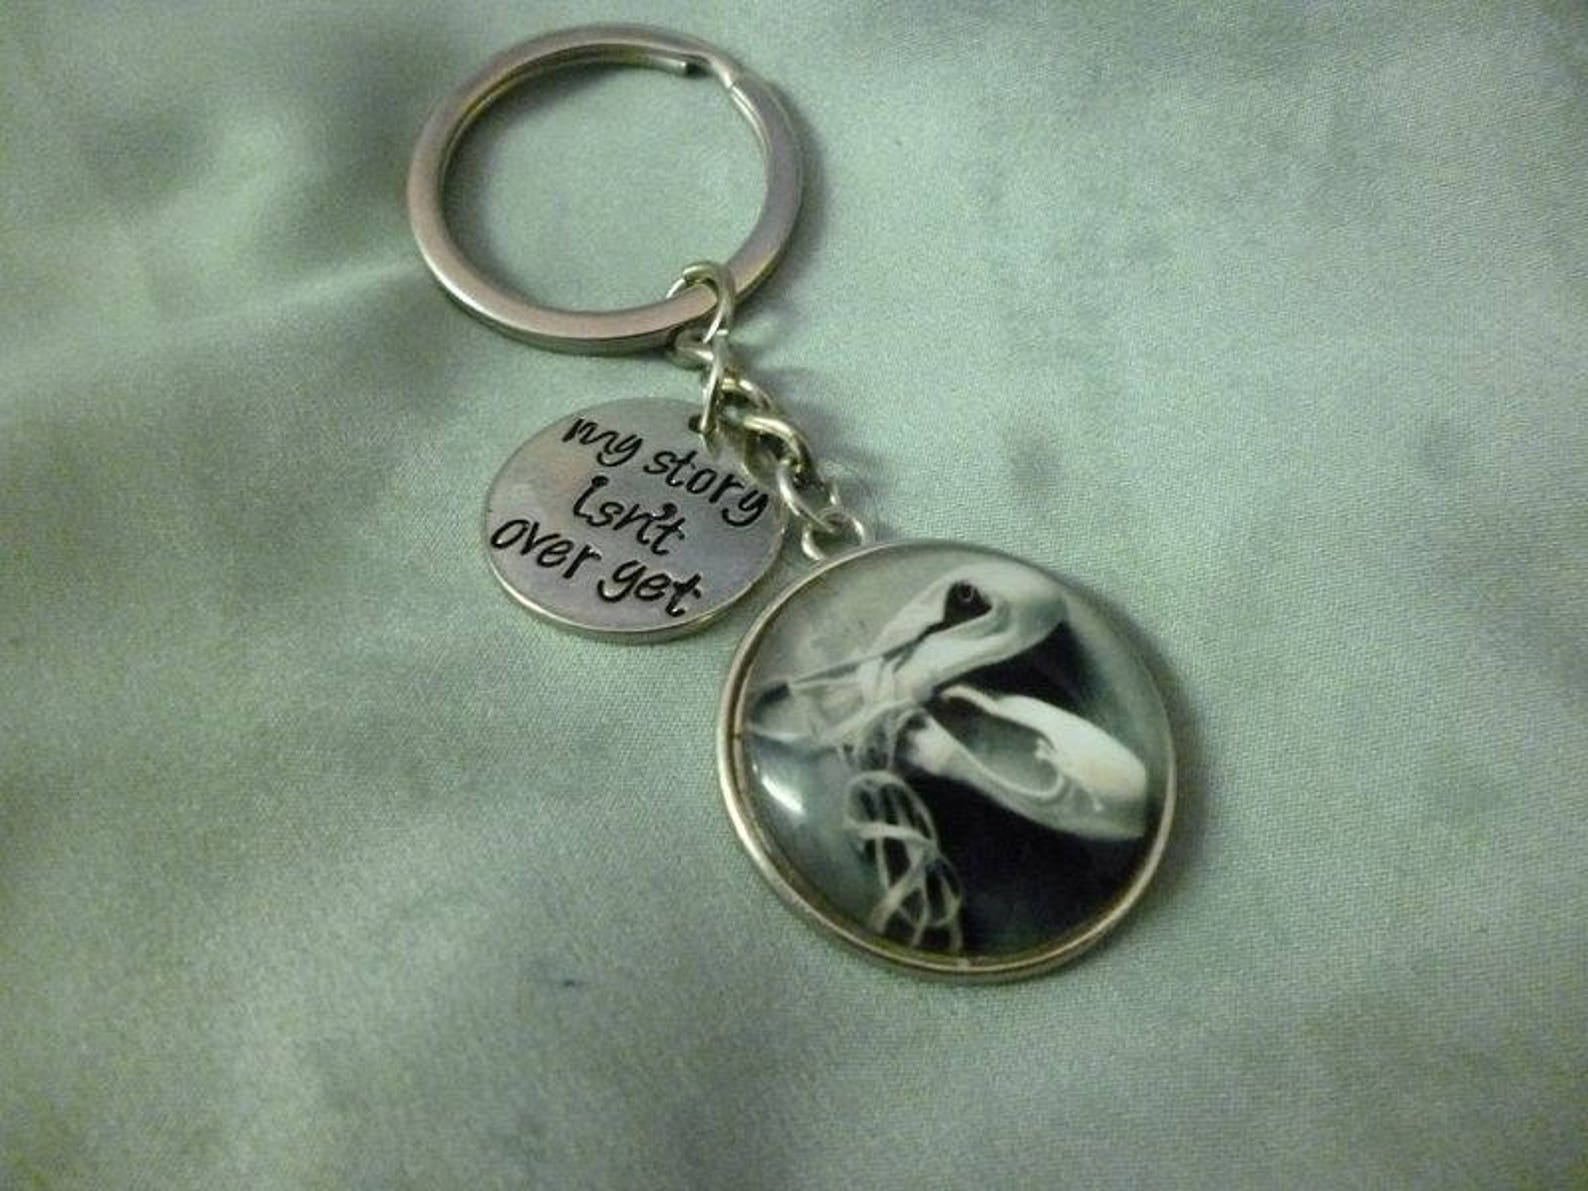 ballet dancing shoes my story isn't over keyring